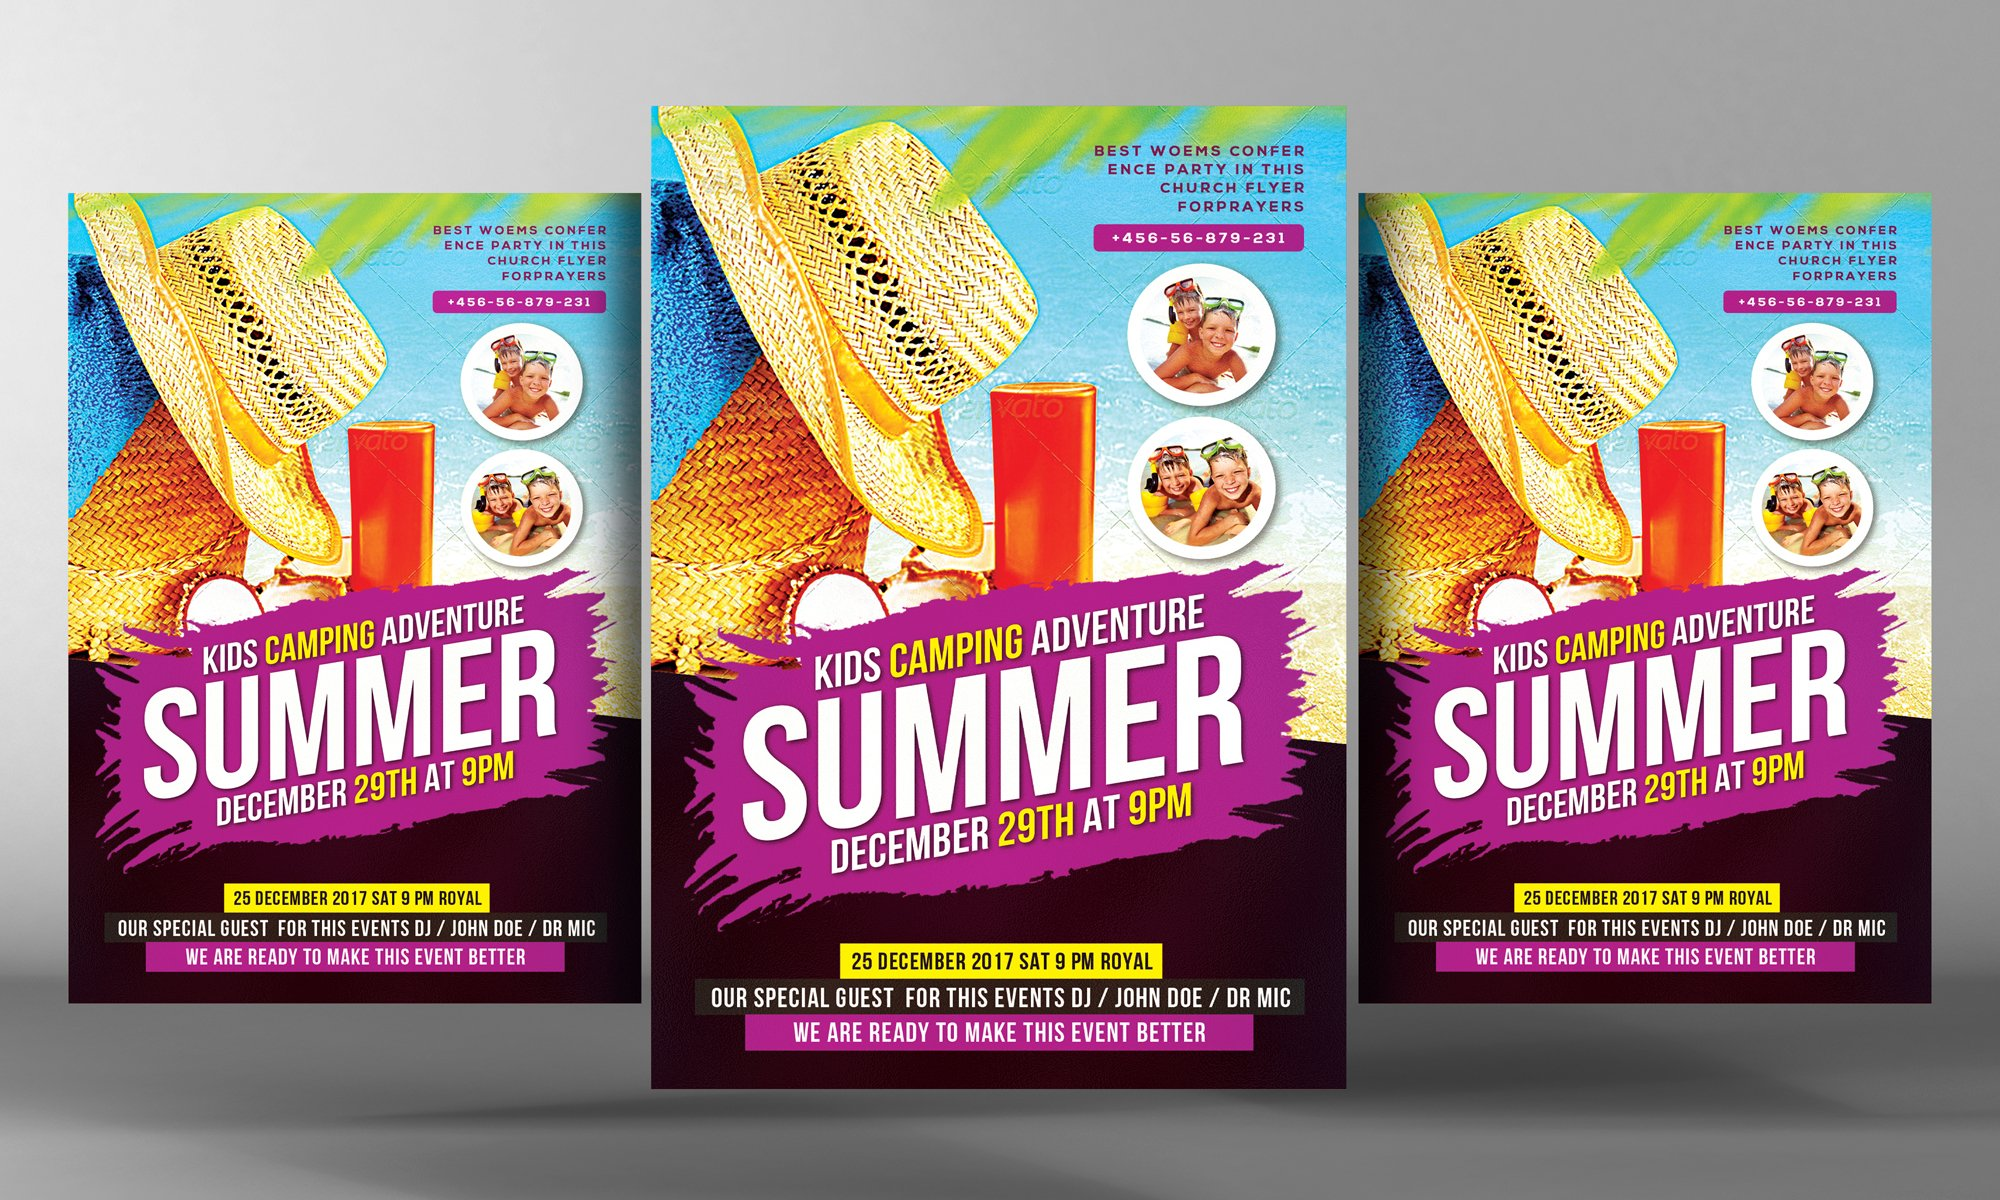 Kids Summer Camp Flyers Flyer Templates on Creative Market – Summer Camp Flyer Template